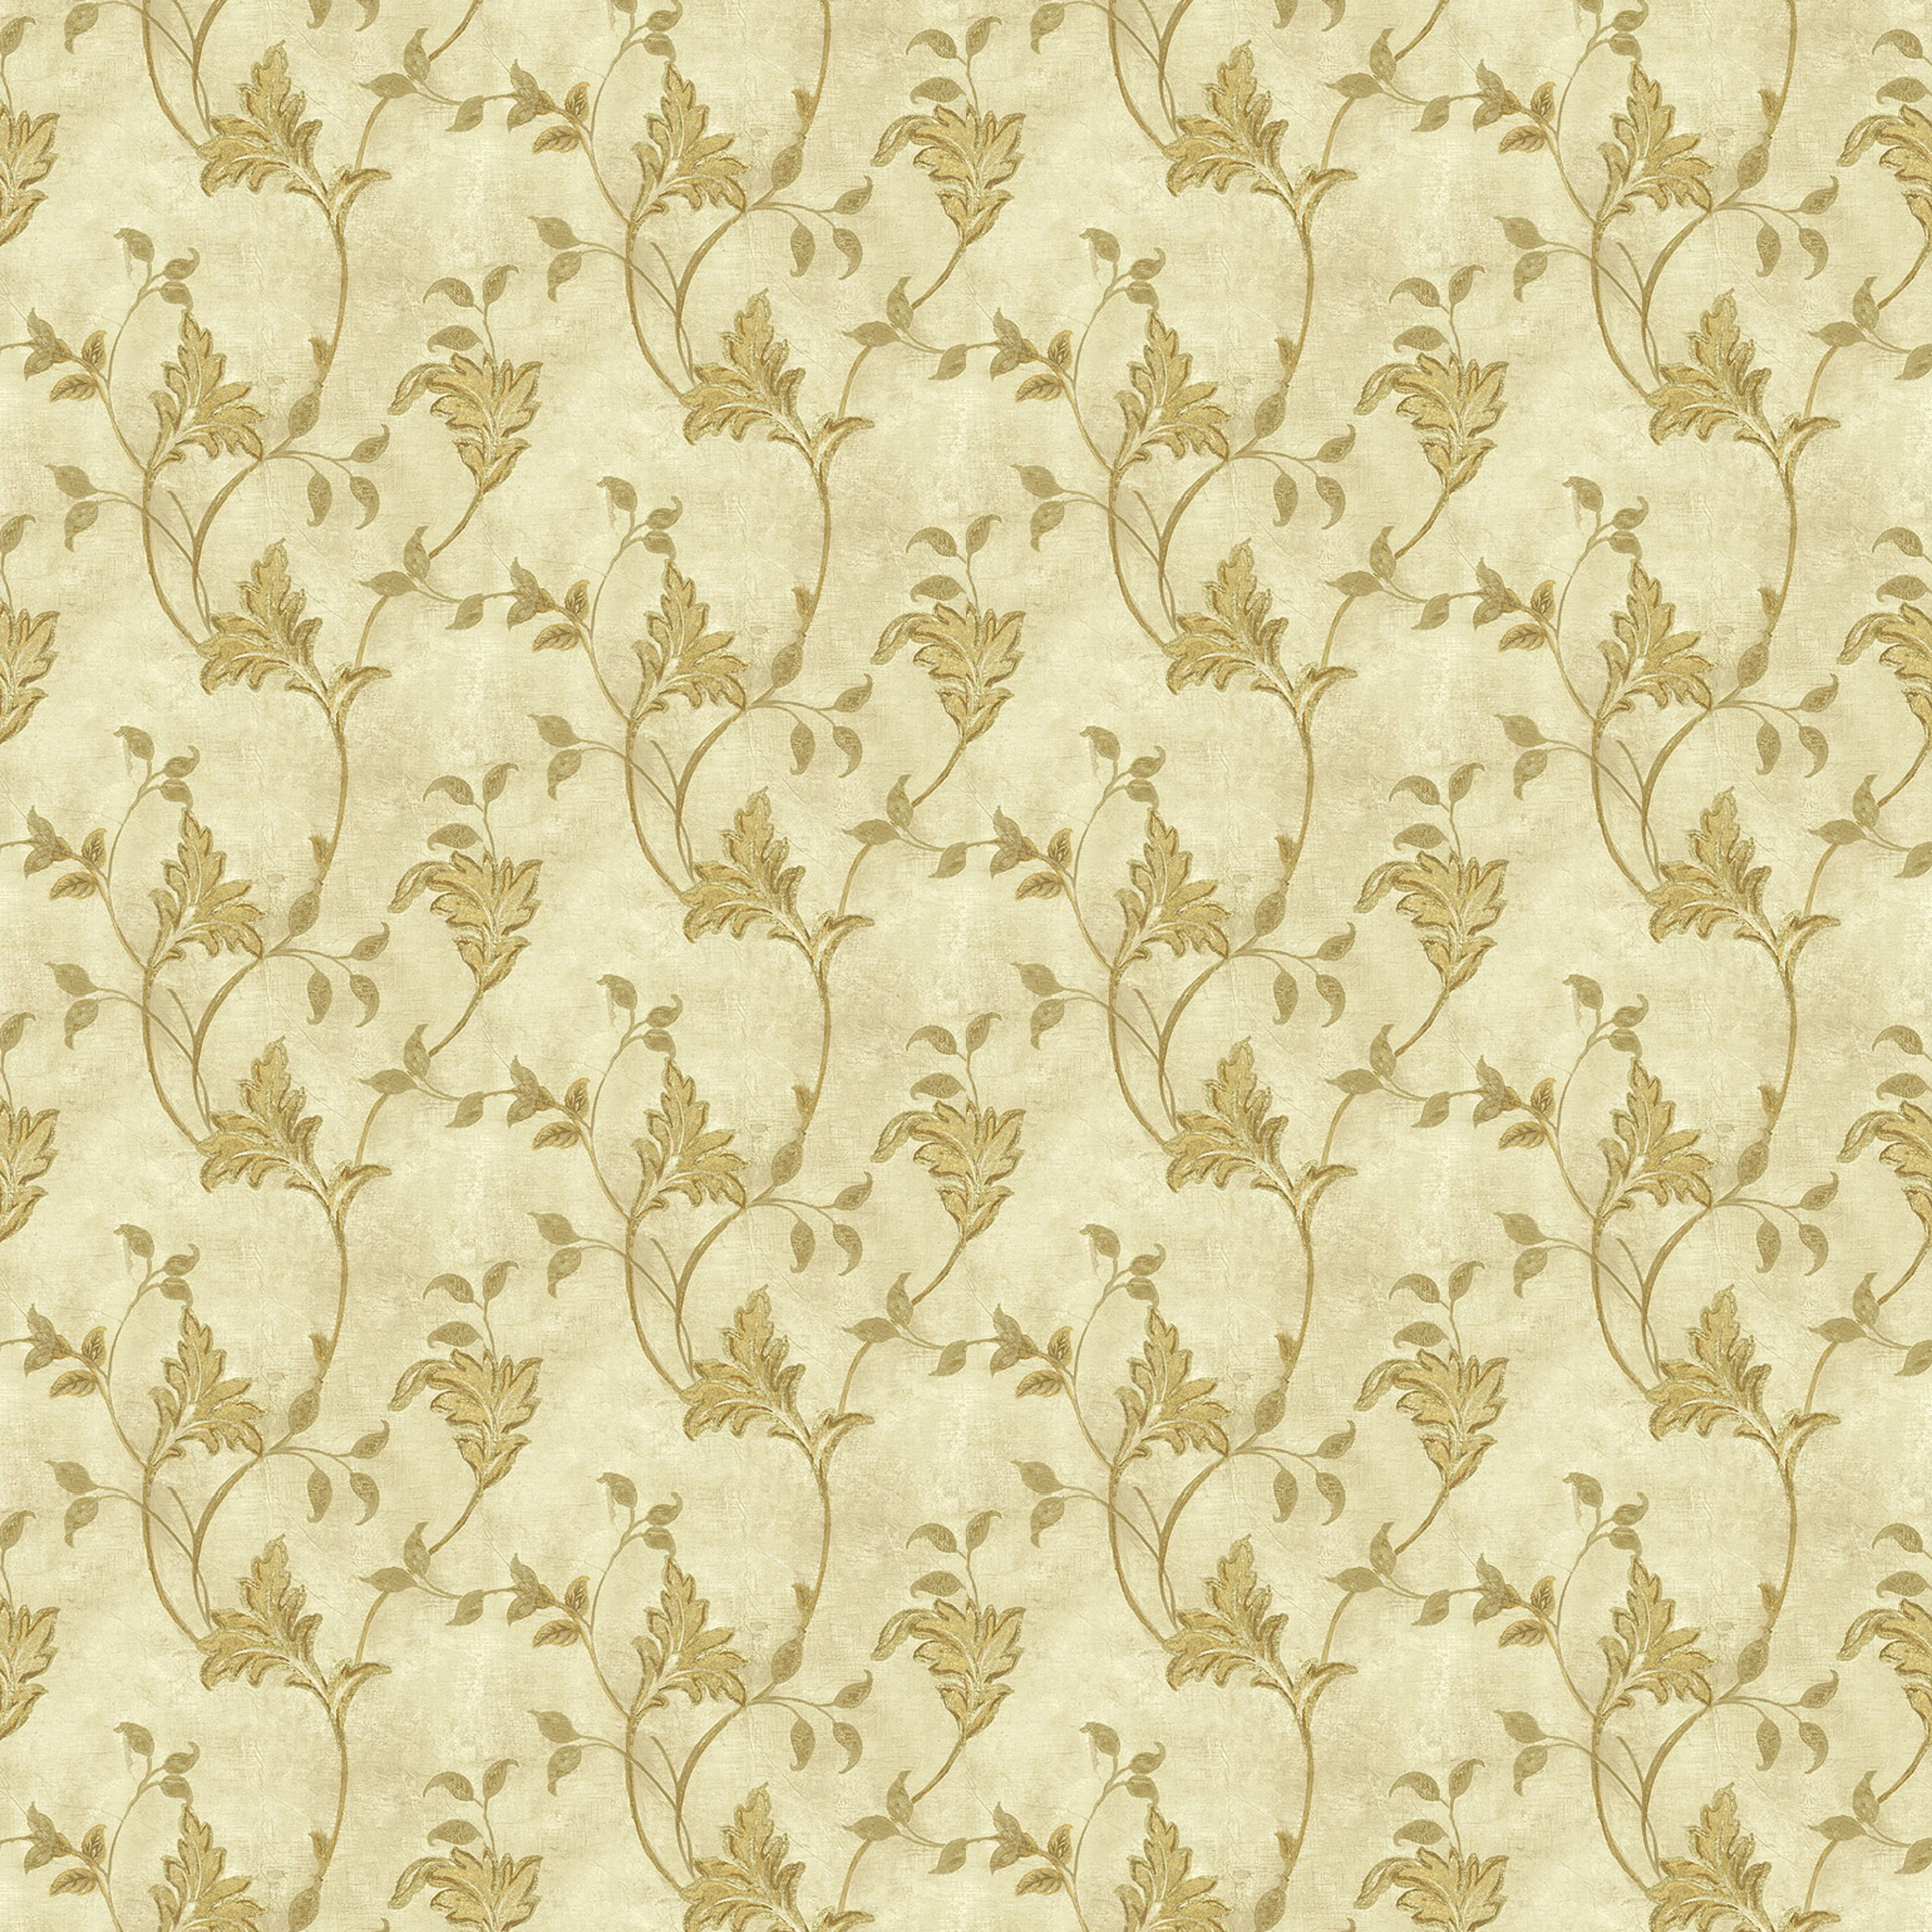 Gold Autumn Backgrounds With Floral Patterns Download Any